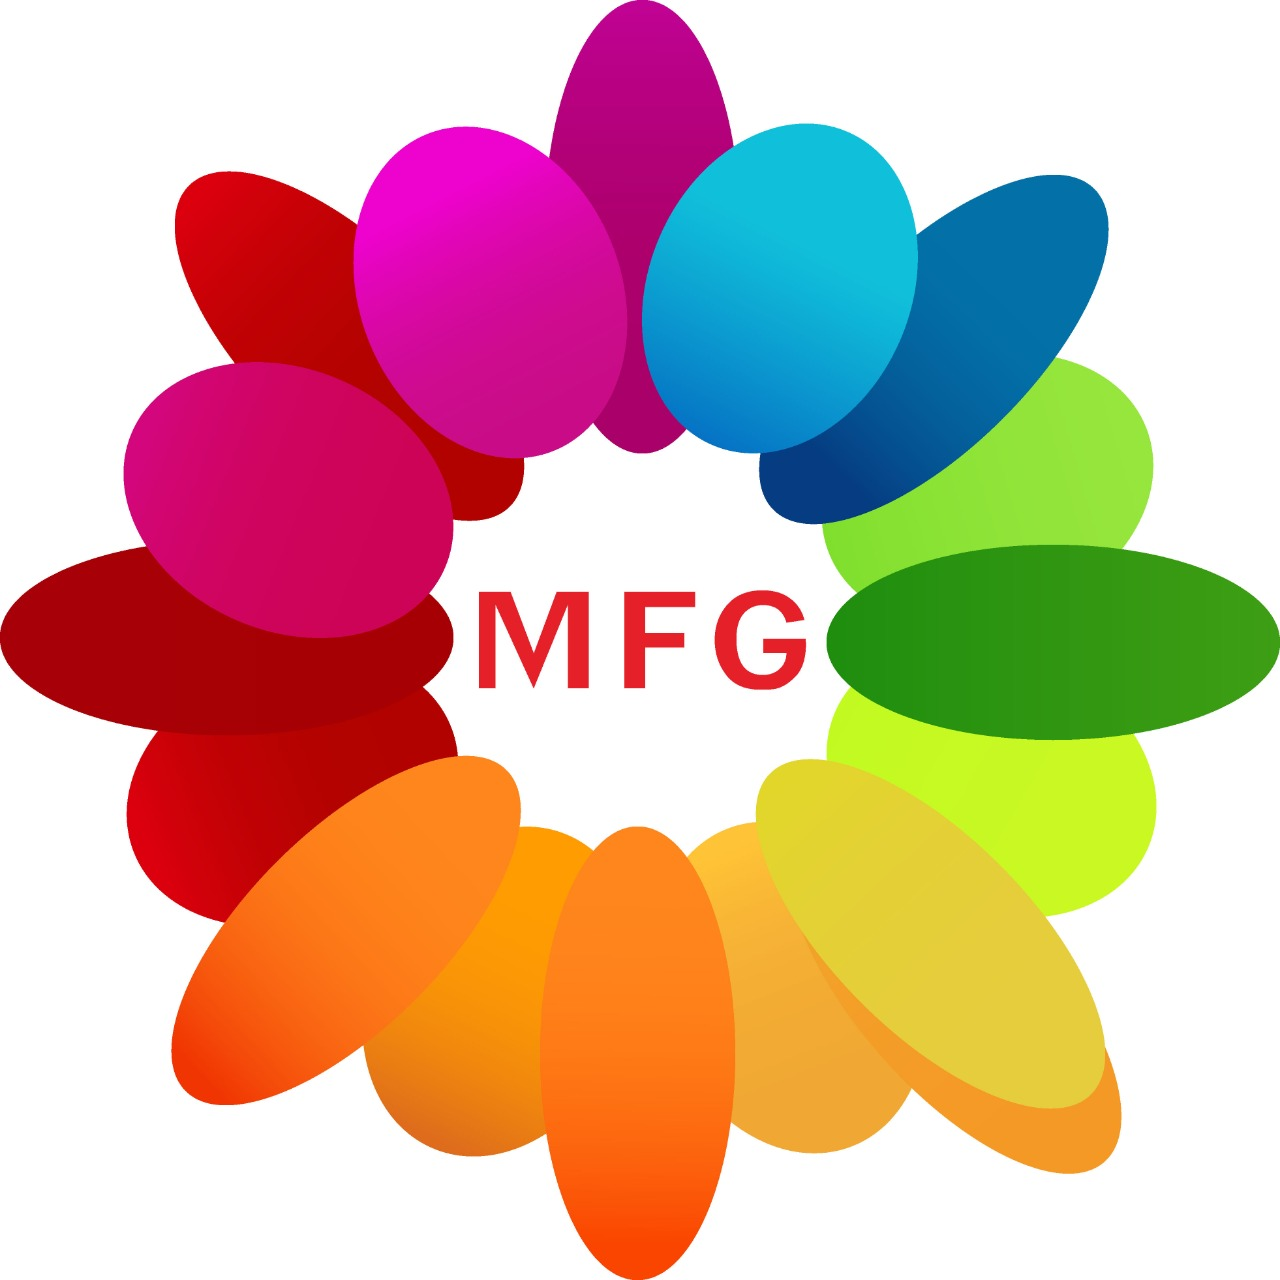 Bunch of 8 purple orchids with box of 16 pcs rocher ferrero chocolates